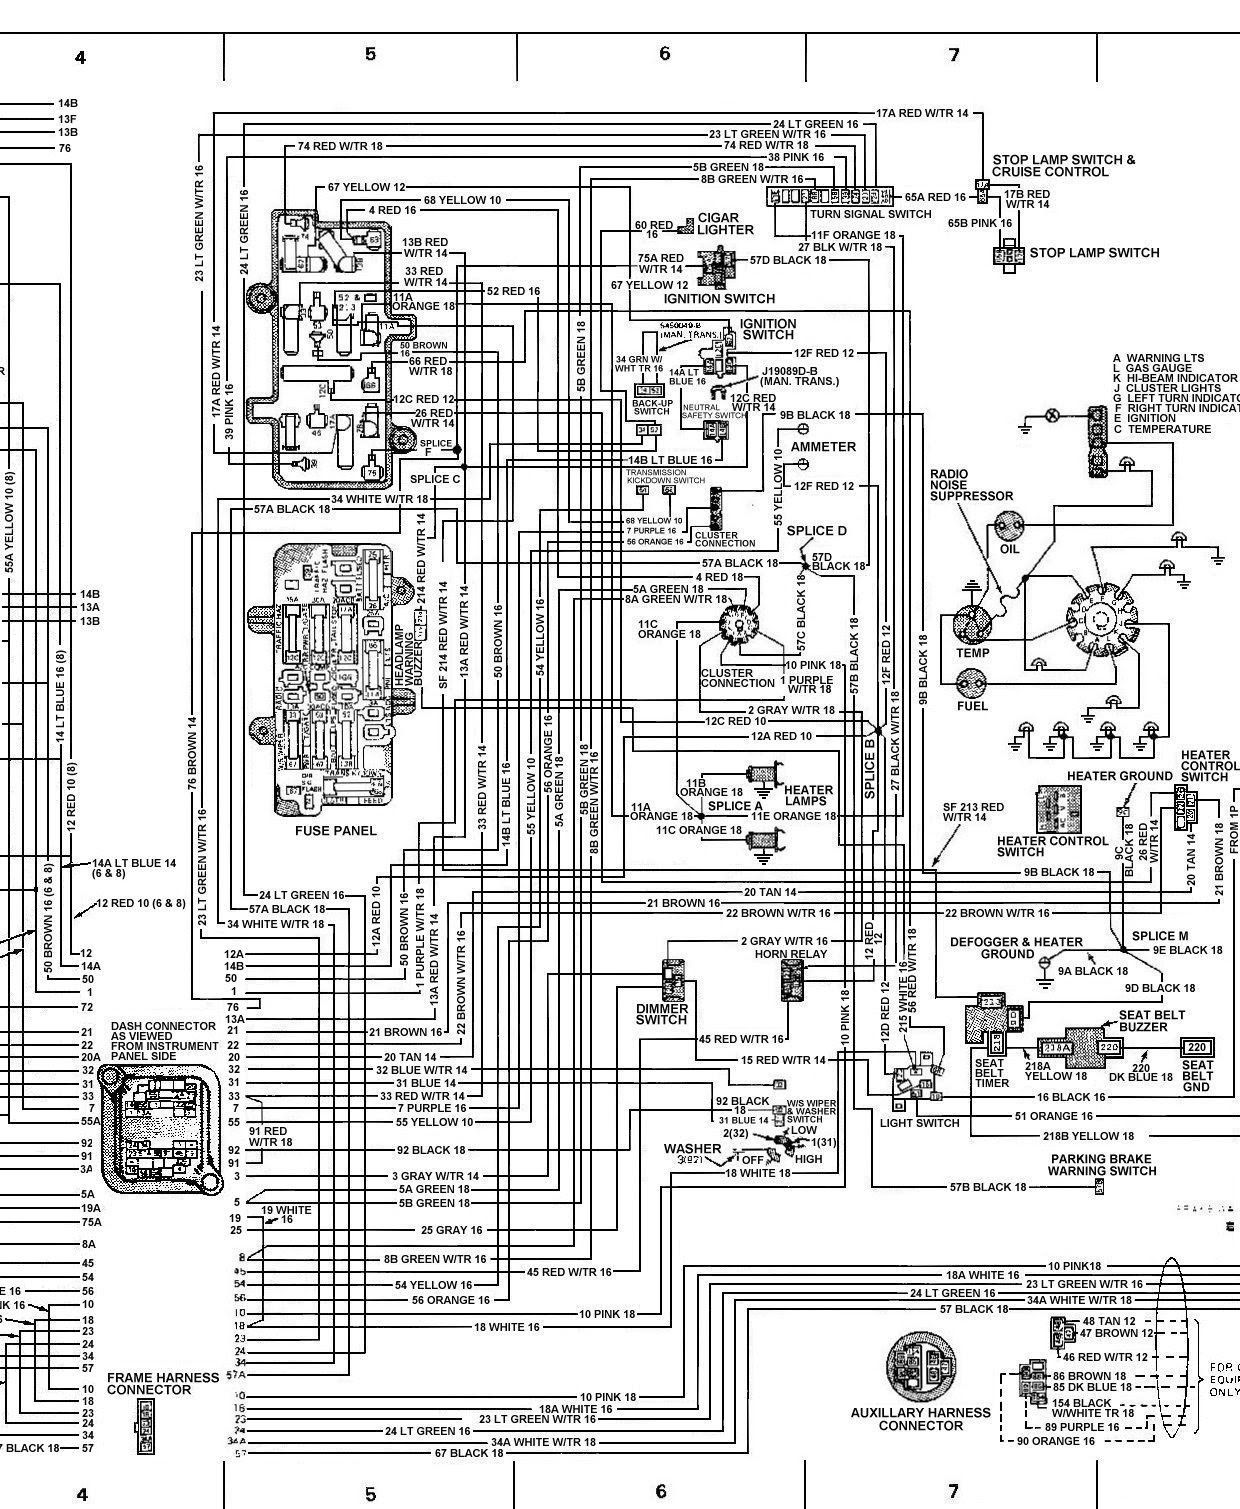 Epic 2002 Pt Cruiser Wiring Diagram 76 About Remodel Led